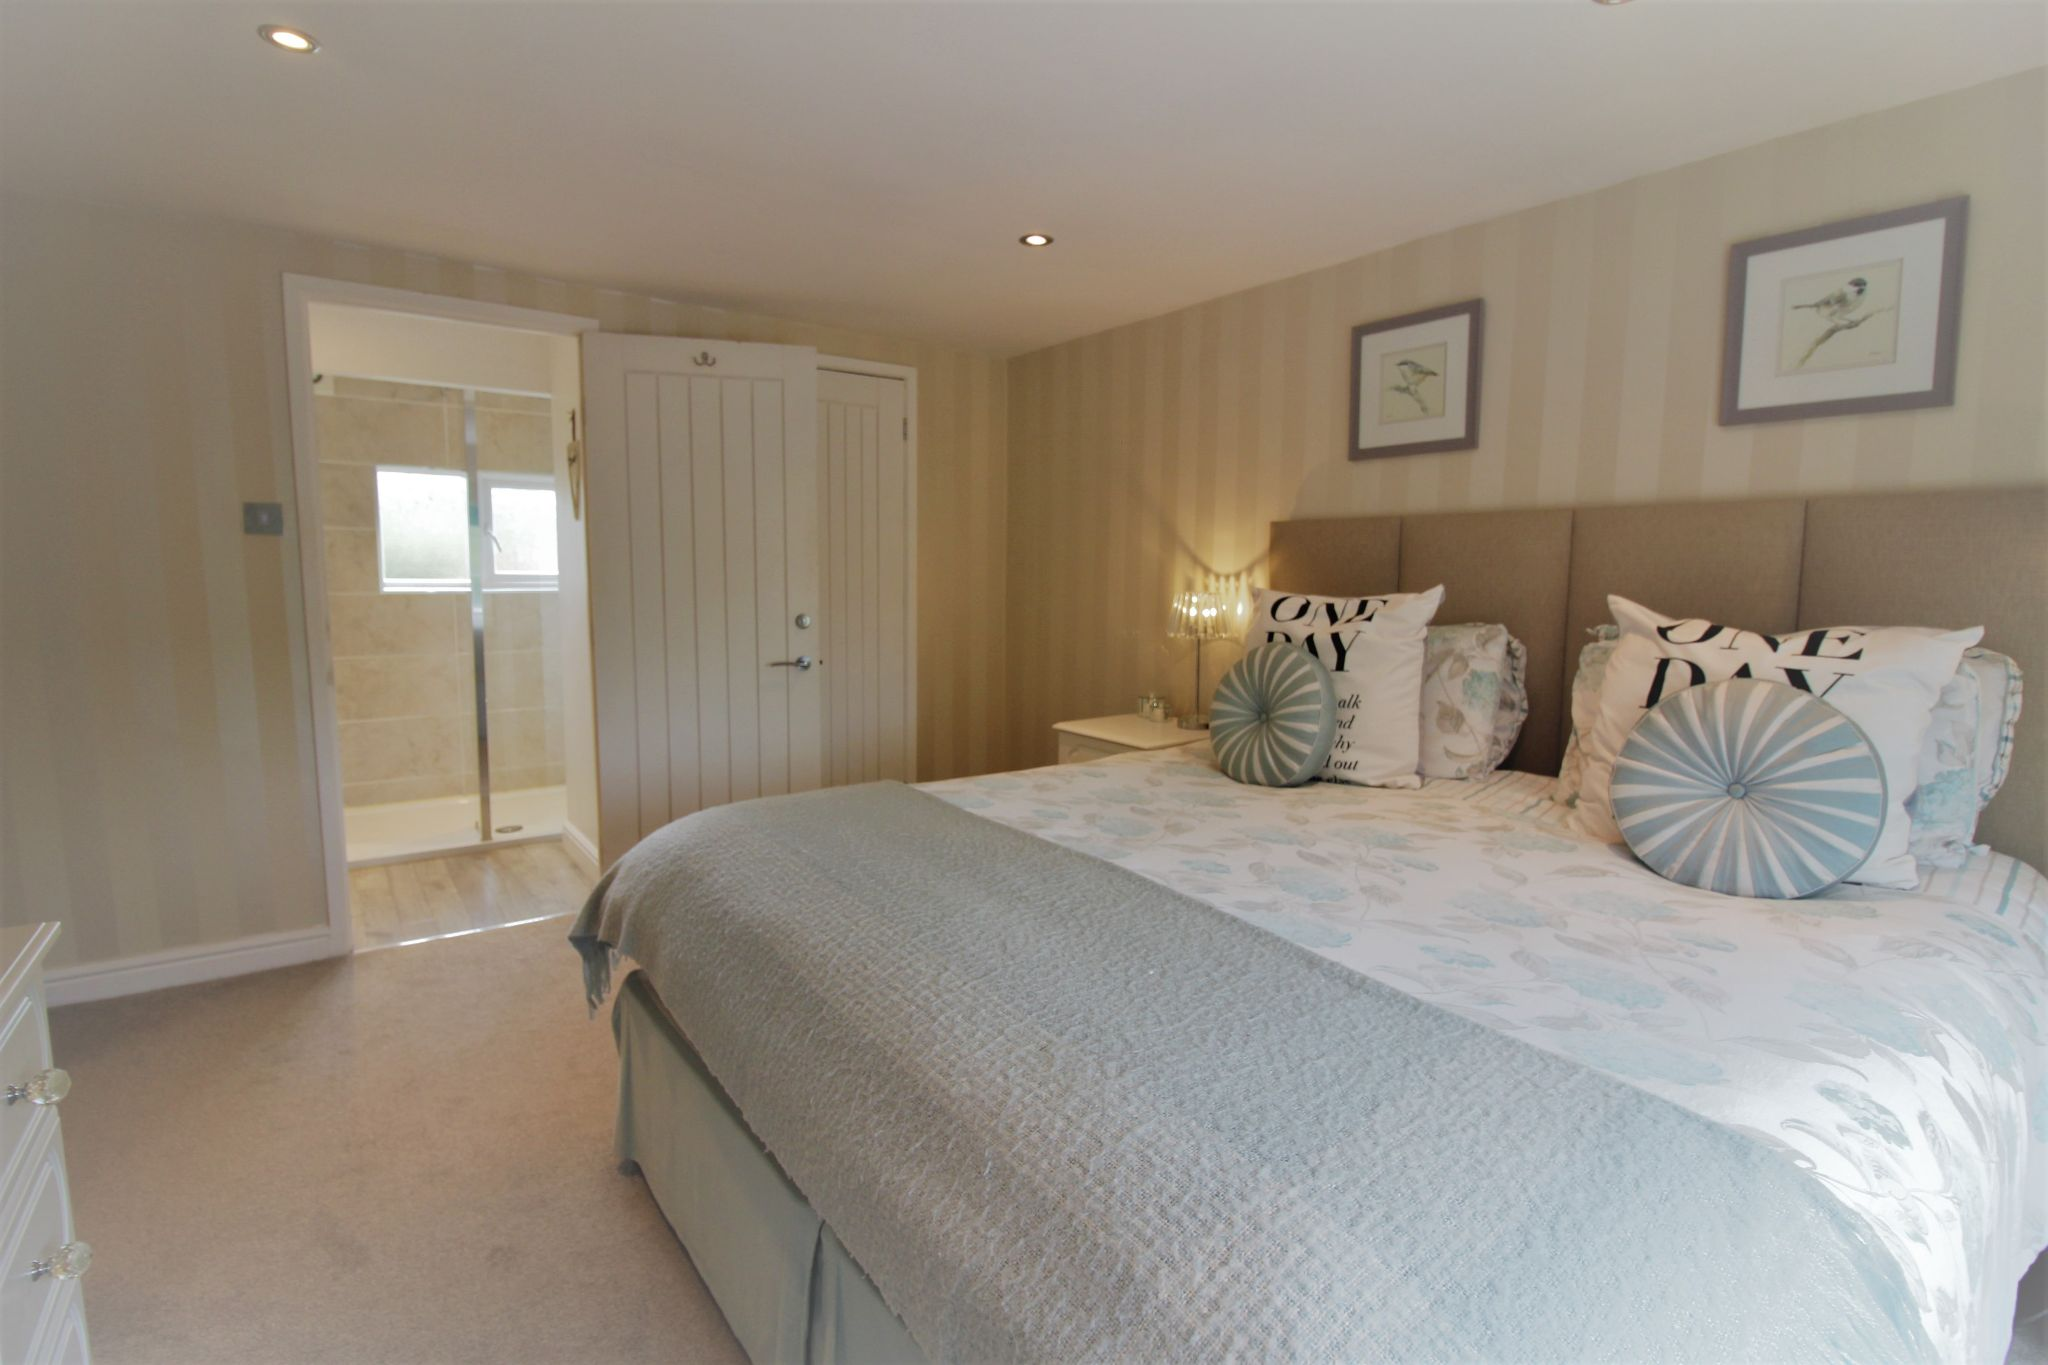 4 bedroom semi-detached house SSTC in Solihull - Photograph 13.